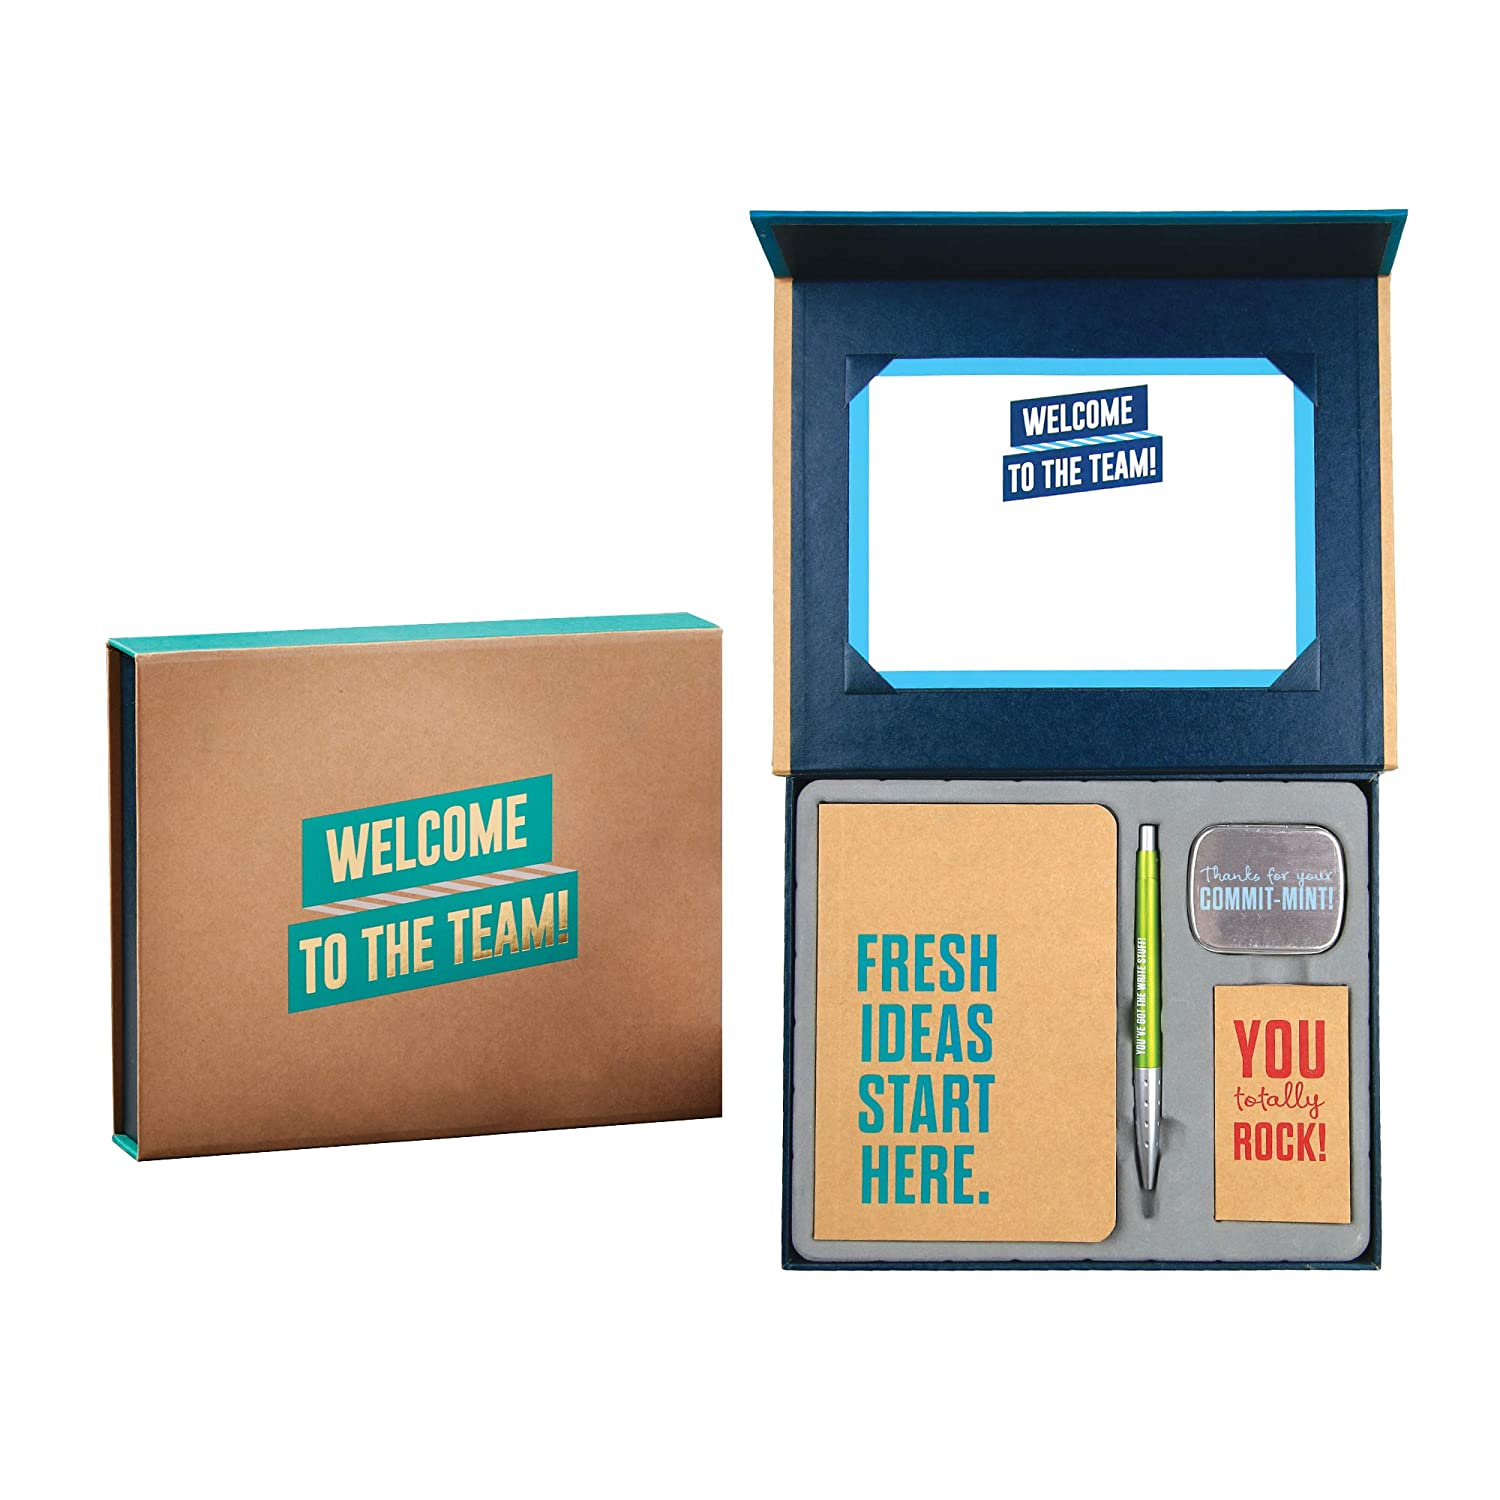 New Employee Welcome Gift Set Kit Signable Certificate Small Bound Journal Blue Ink Retractable Ballpoint Click Pen 6 Praise Cards Breath Mints Teal And Gold Logo Personalization Welcome Amazon In Office Products